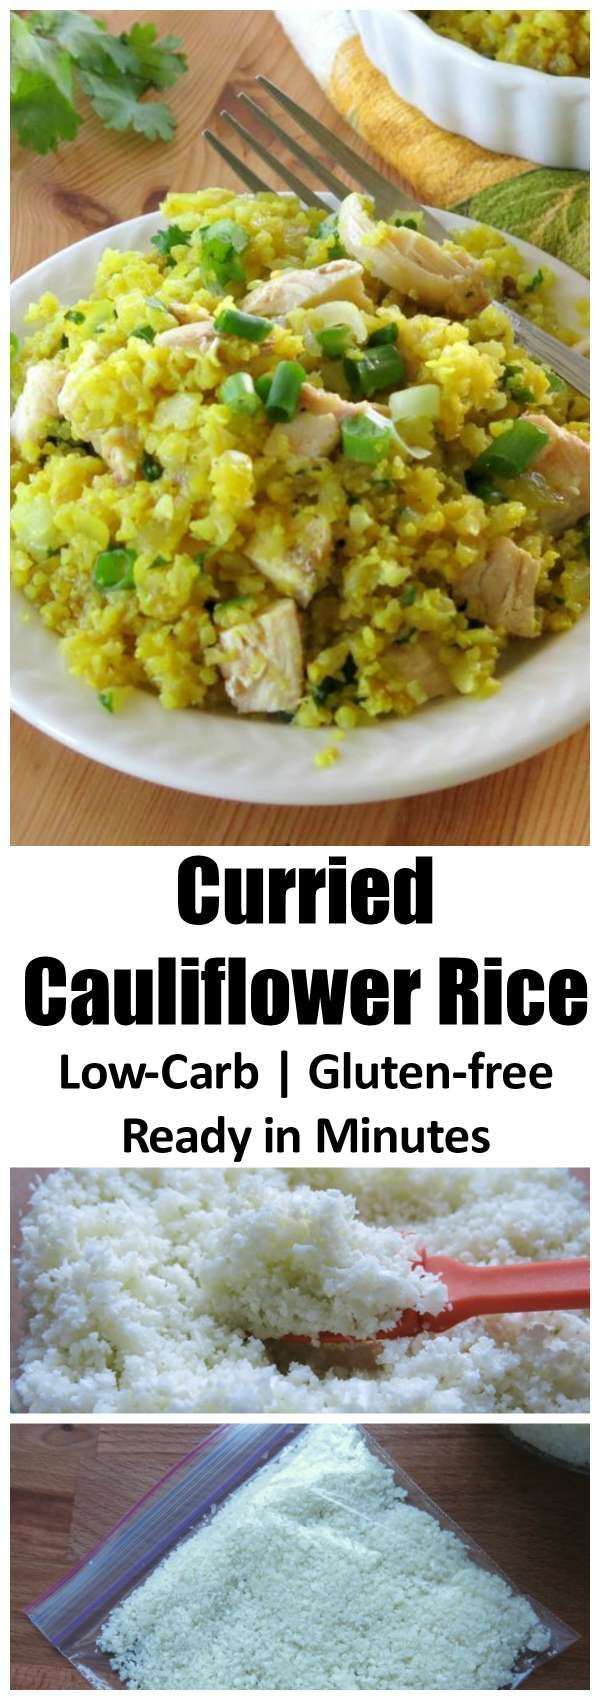 Easy Curried Cauliflower Rice takes less than 15 minutes to prepare and is ready in even less time when you follow our tip for freezing cauliflower rice. Low-carb, gluten-free, vegan and paleo recipe that we make all the time!